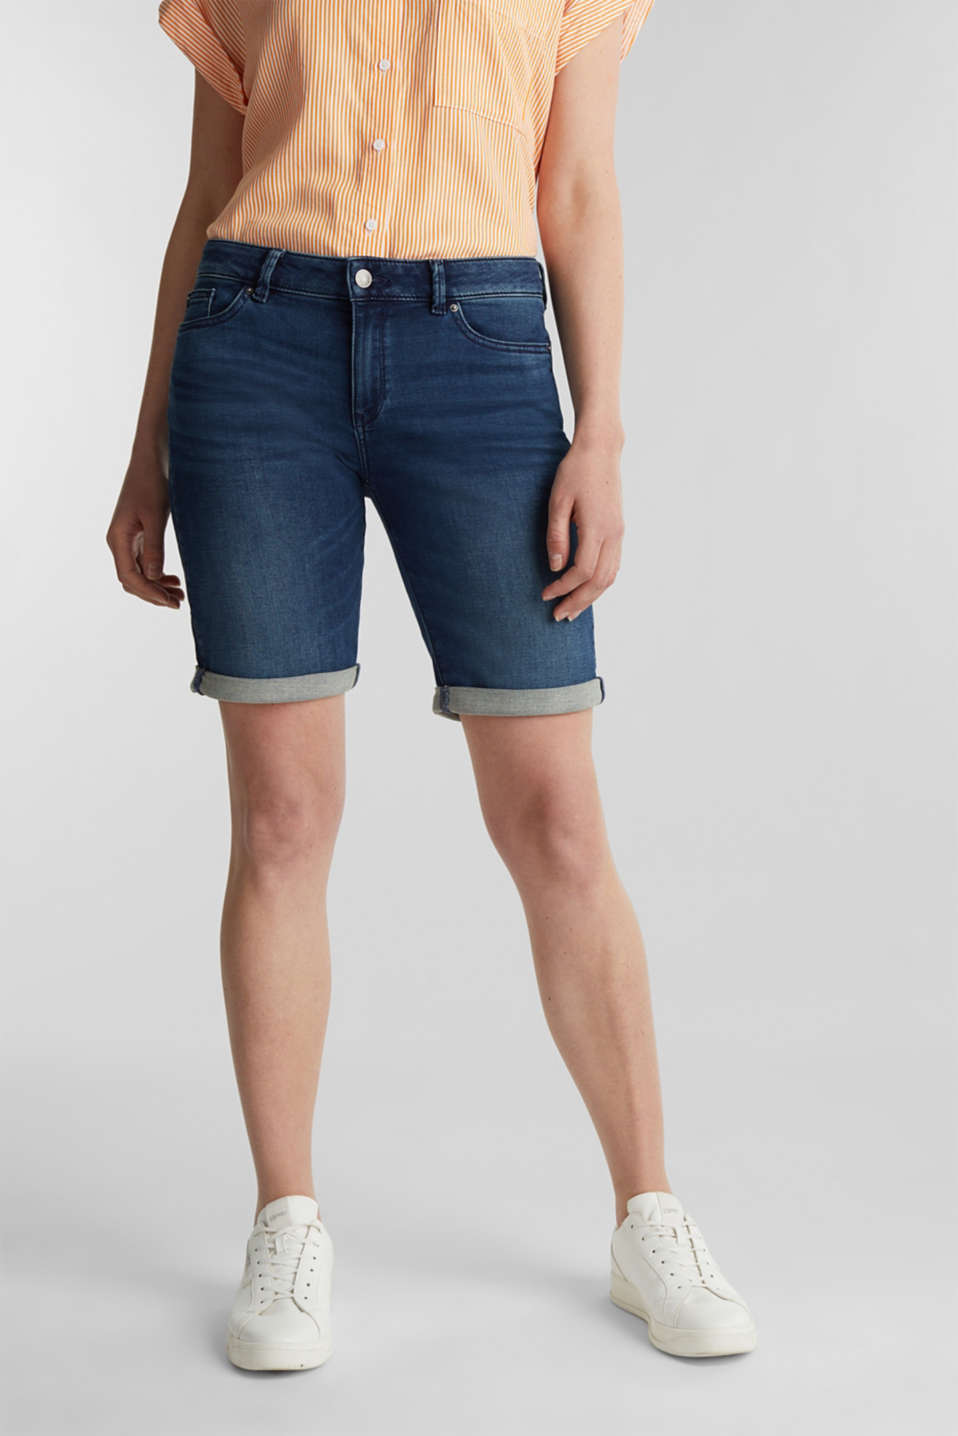 Esprit - Shorts in morbido denim stile jogging